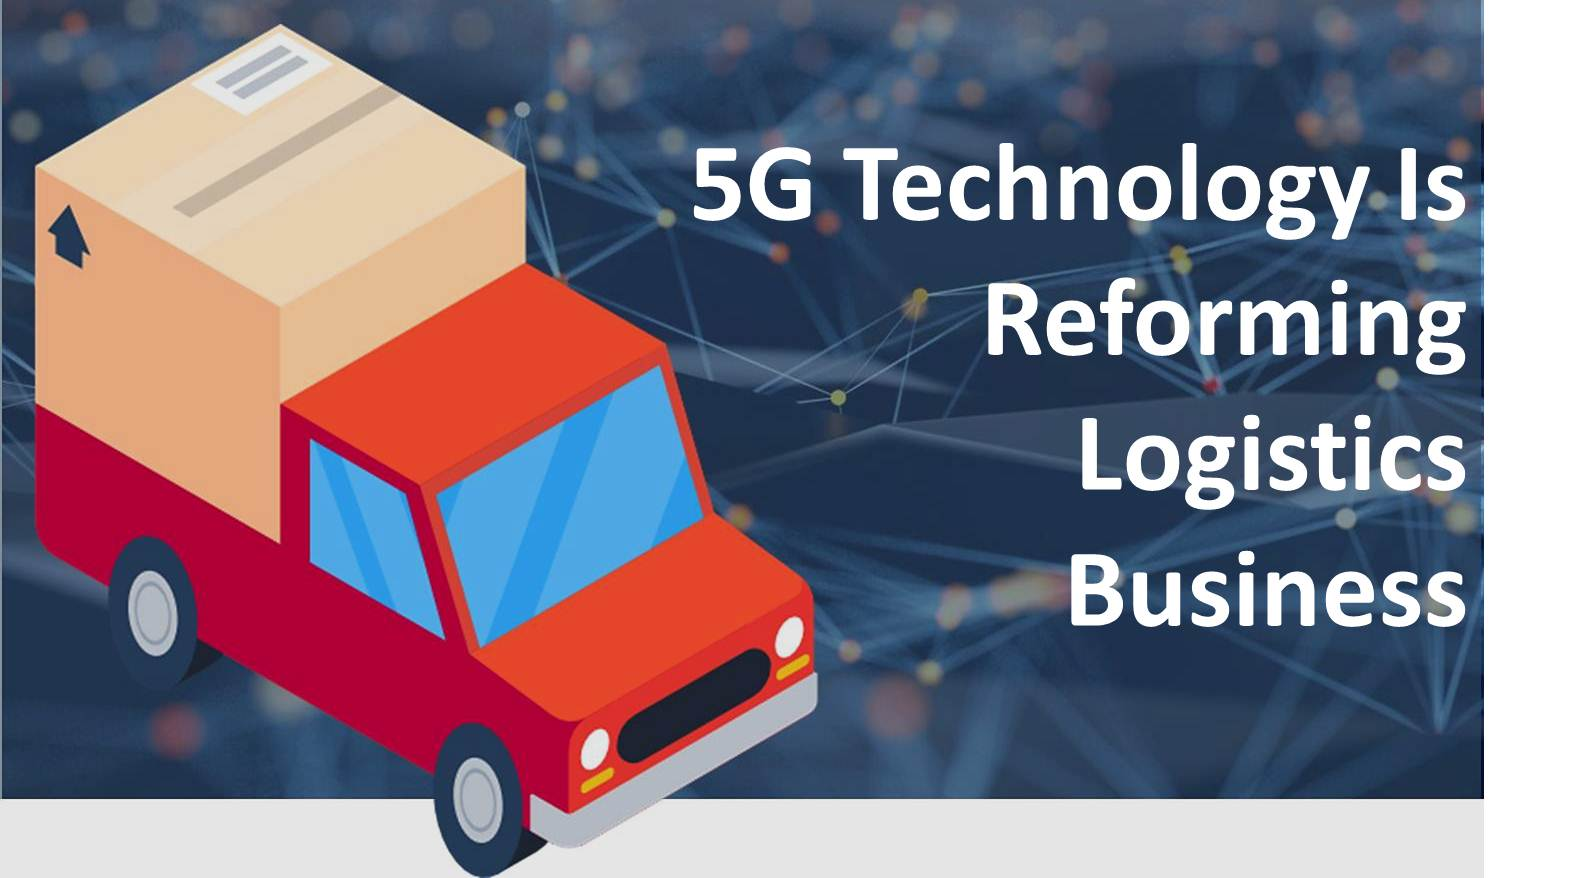 5g logistics, 5G Technology is reforming logistics business, LogixGRID | Platform and Application for logistics management, LogixGRID | Platform and Application for logistics management